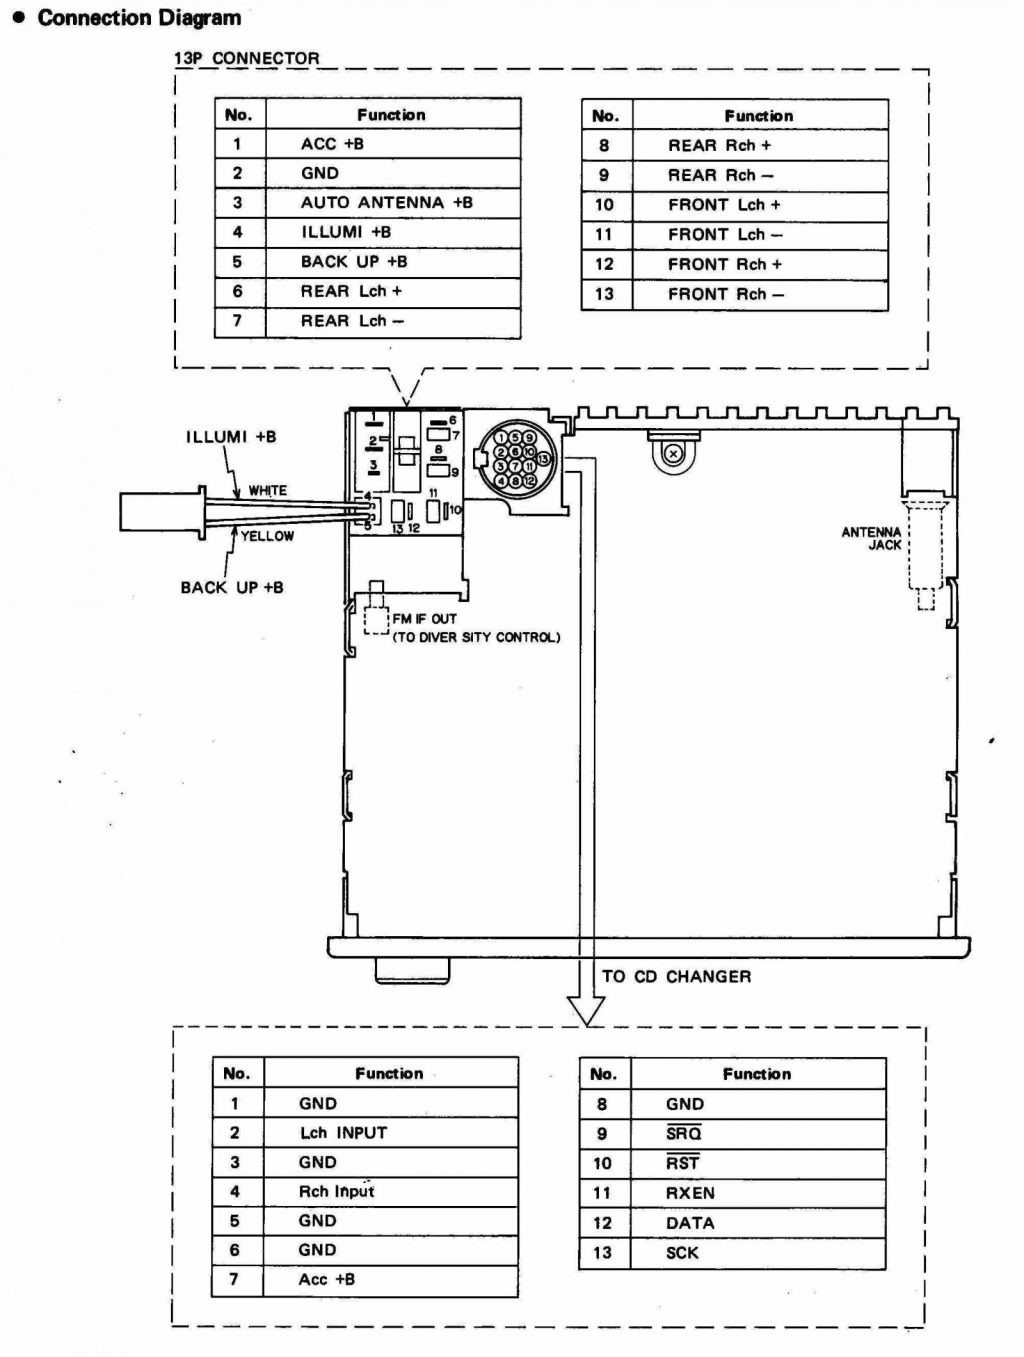 Diagram Car Radio Wiring Diagrams Forony Audio And Jpg Cdx Gt565up With 1600x2121 Sony Striking Stereo Wire Bluetooth For Chevy